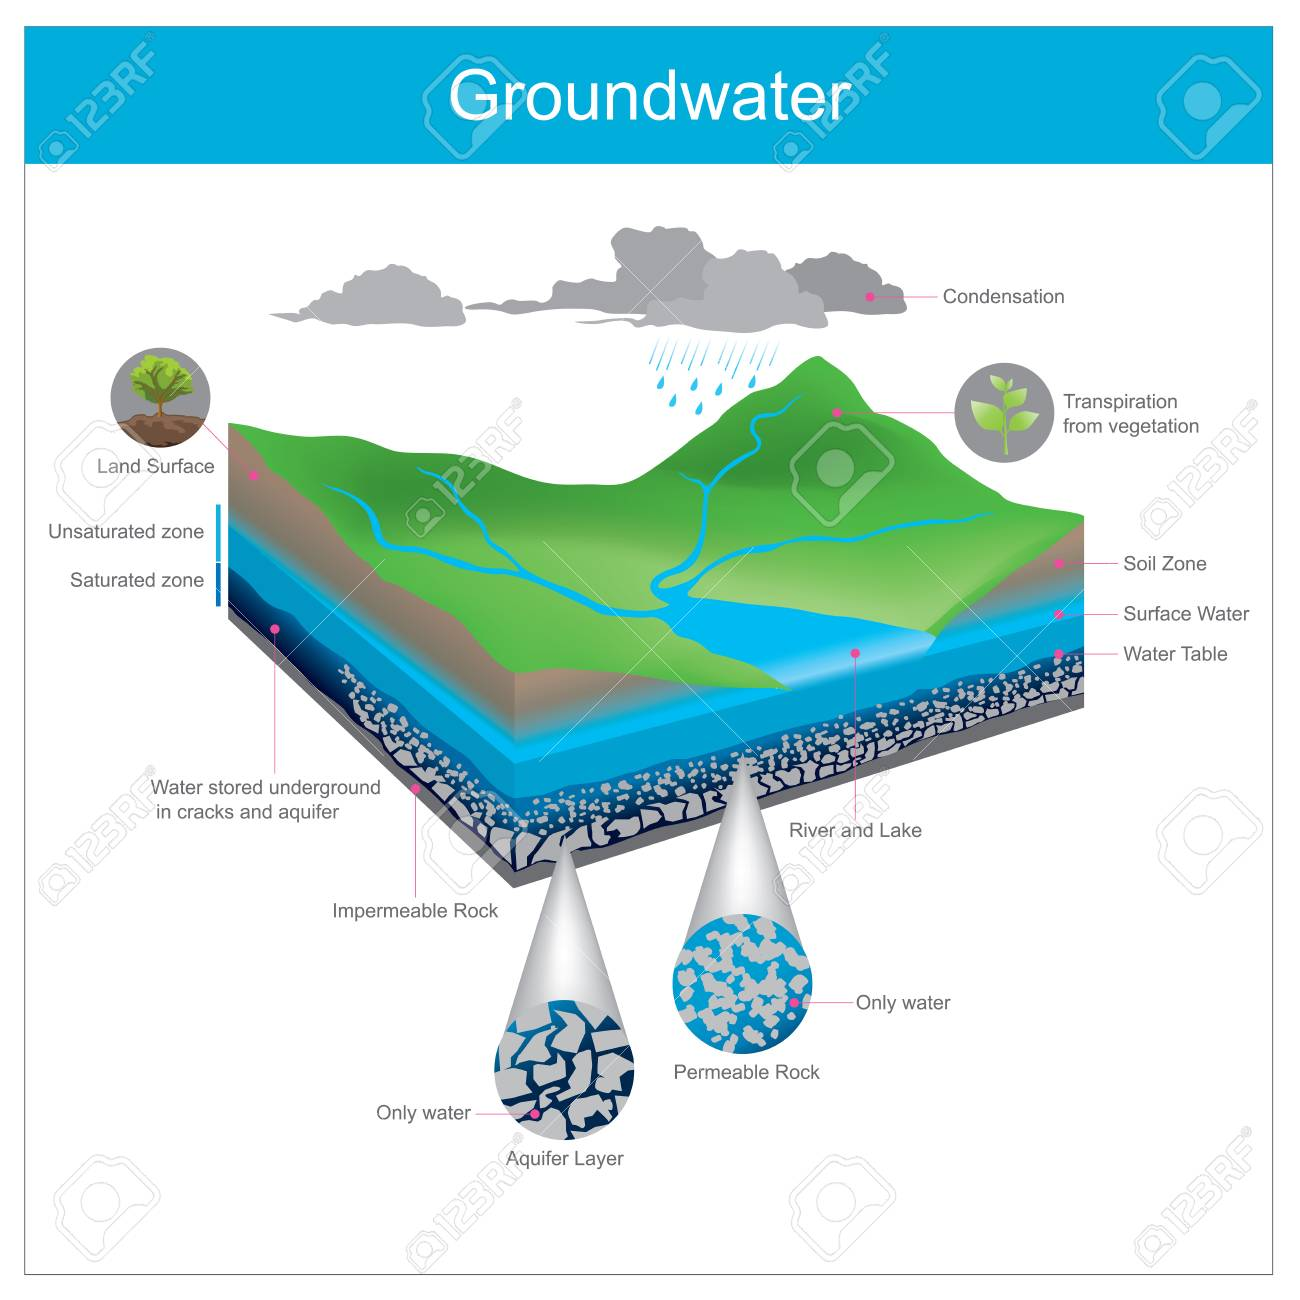 Water natural is stored underground in Crevice or accumulate in the gap between gravel pits. - 104880372